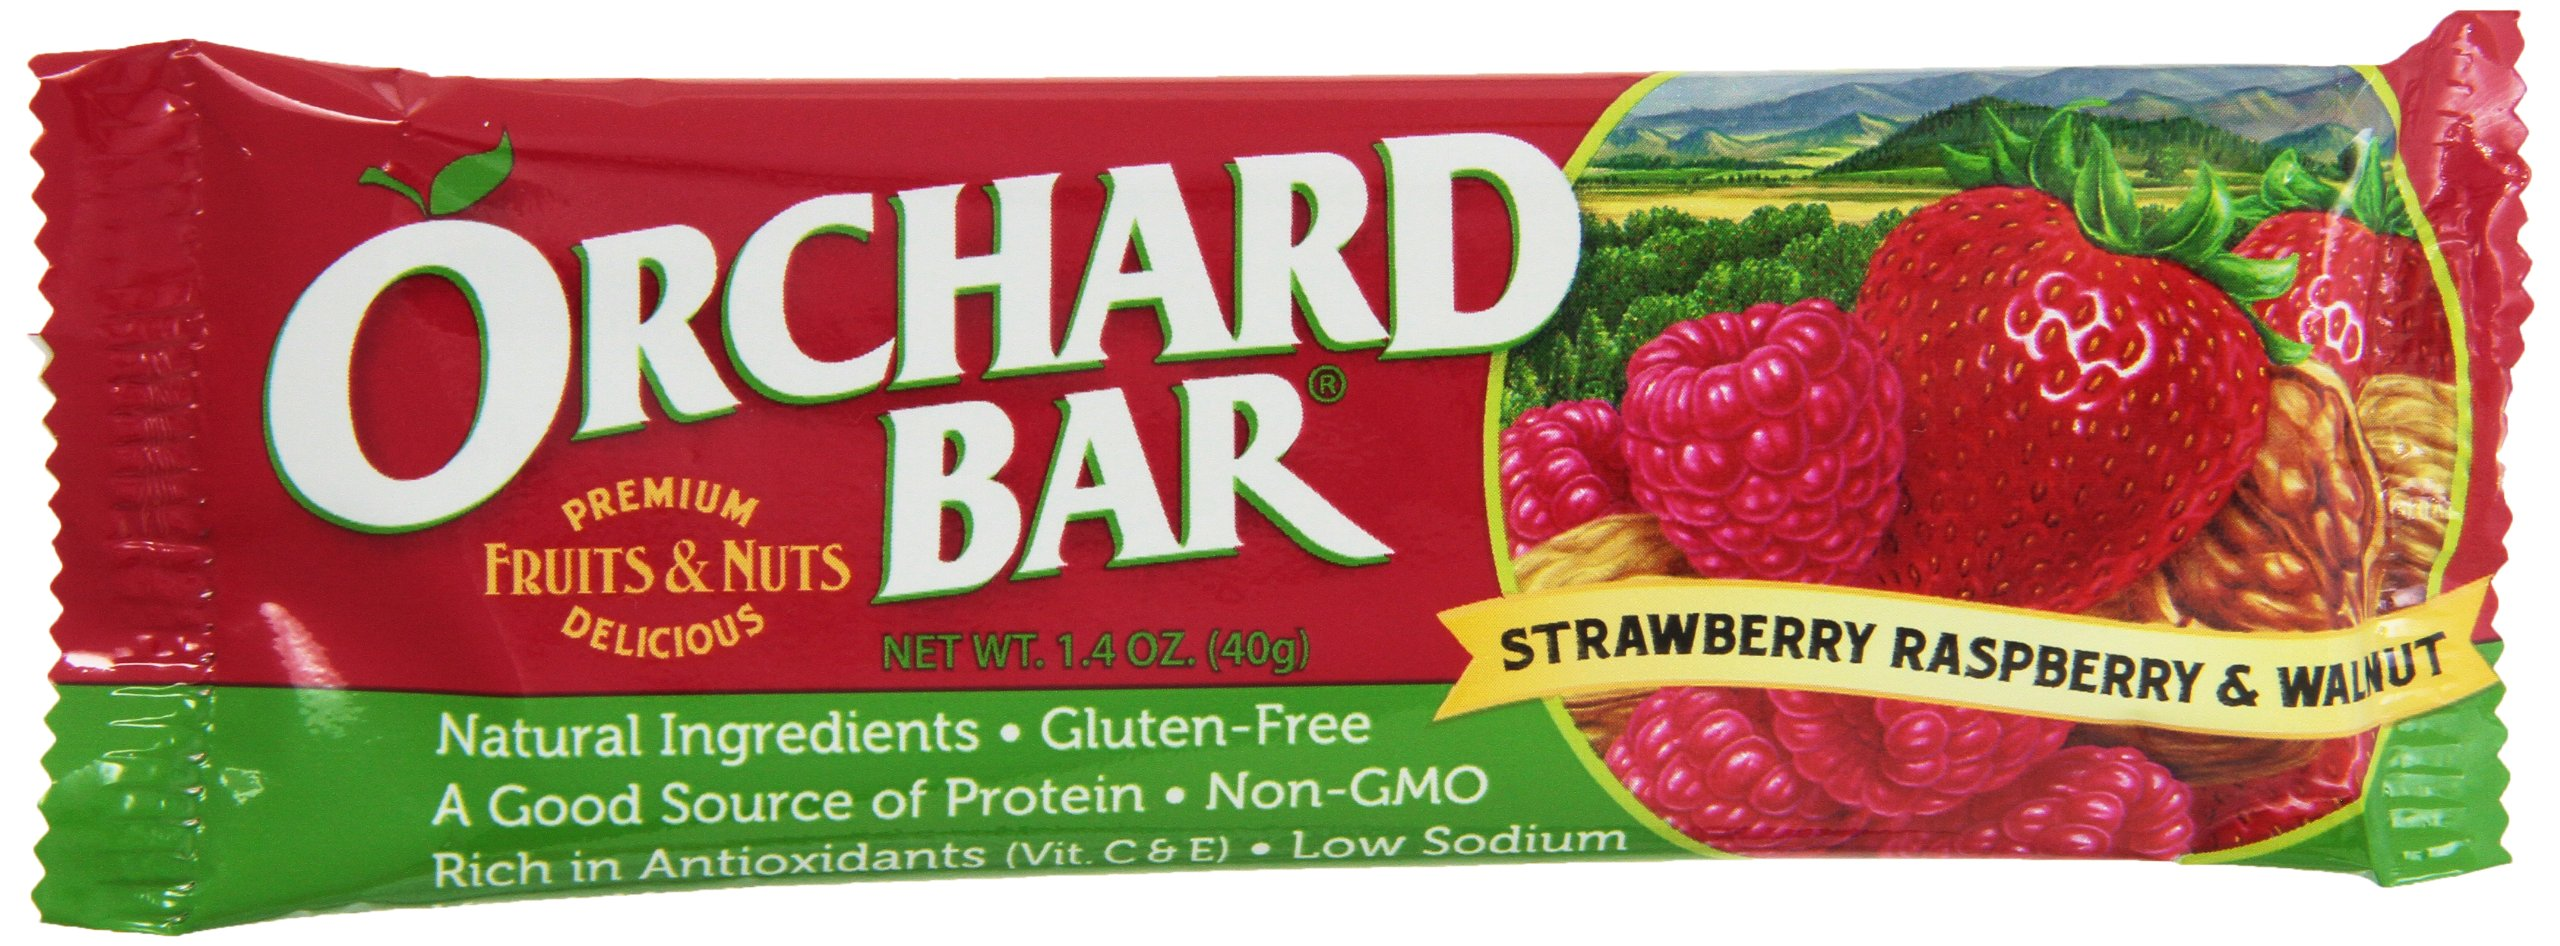 Orchard Bars Fruit and Nut Bar, Strawberry/Raspberry/Walnut, 1.4 Ounce (Pack of 12)